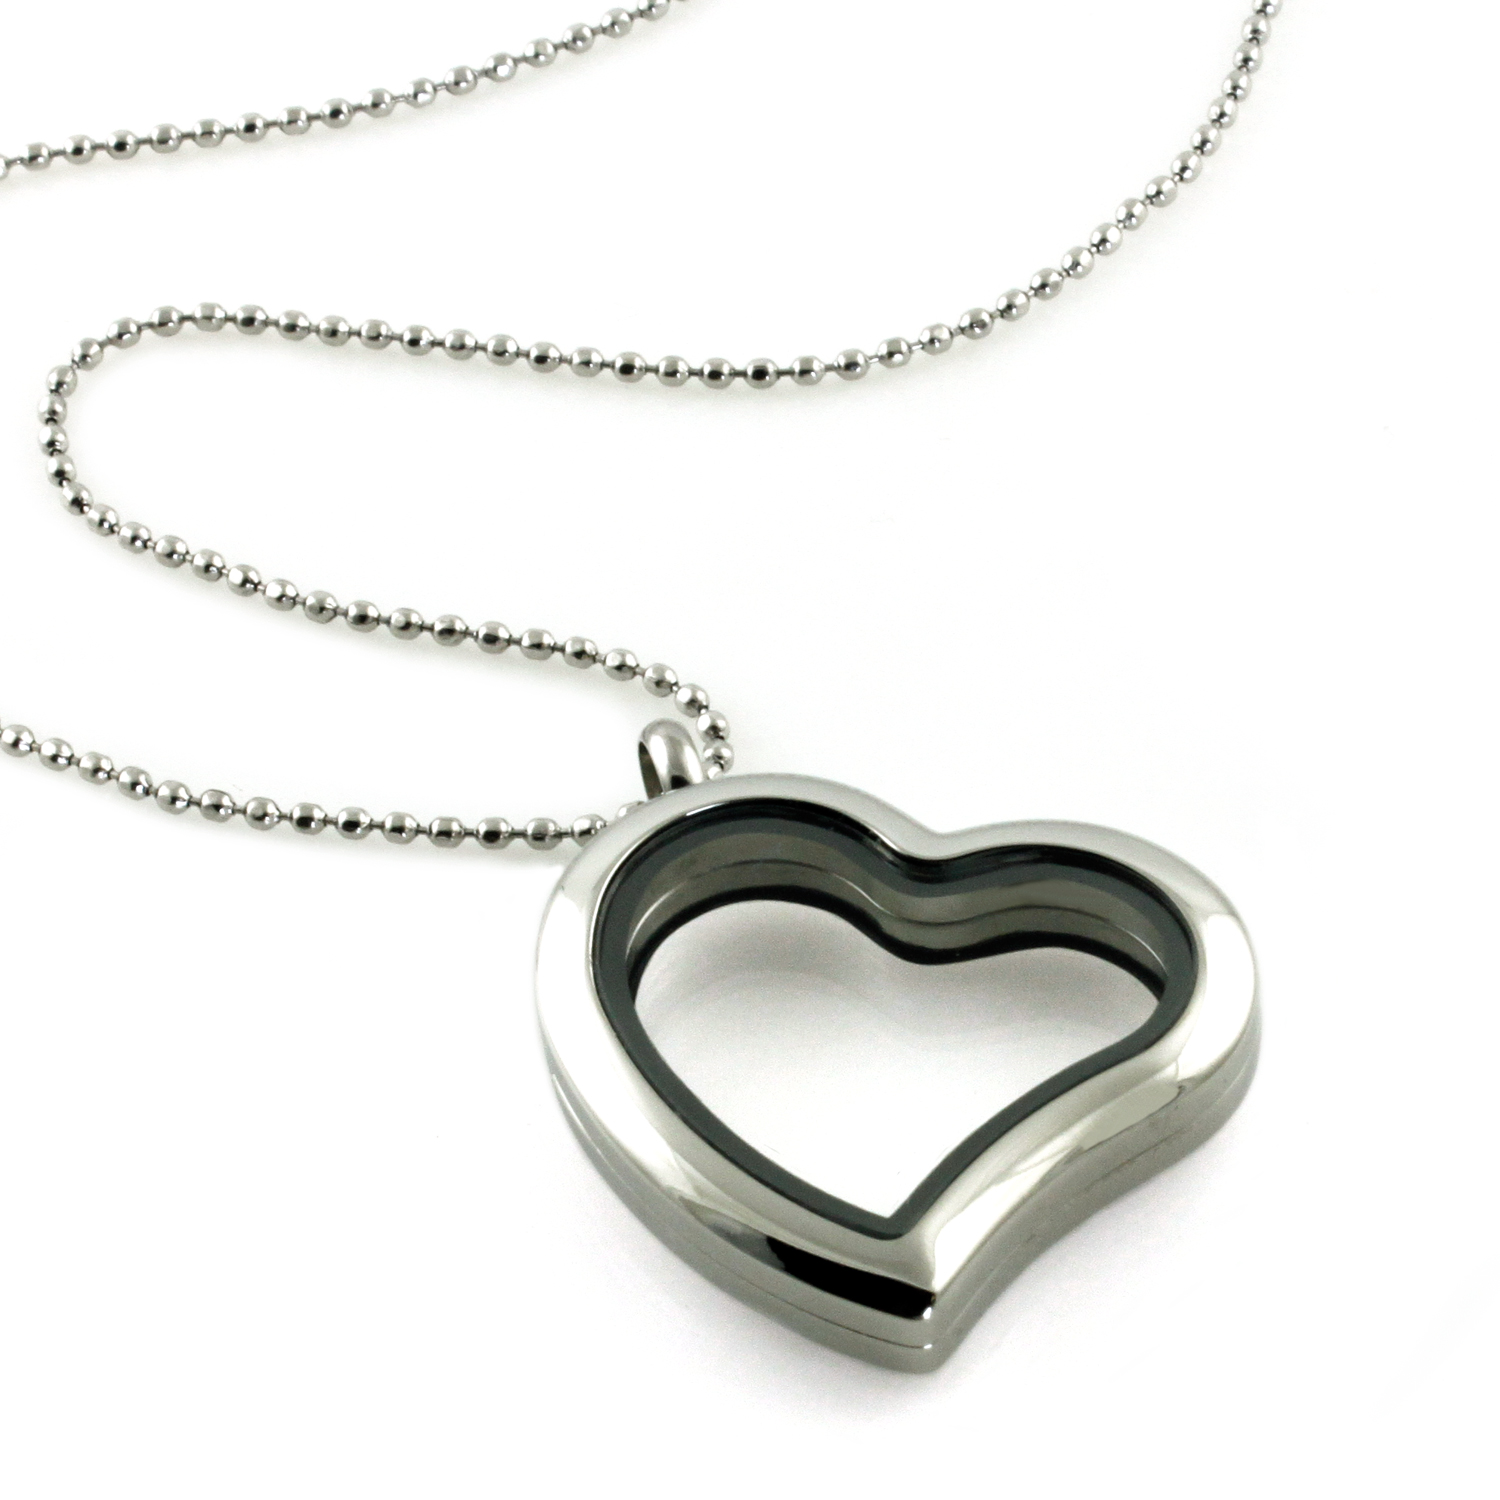 Stainless Steel Polished Glass Heart Locket PENDANT Necklace